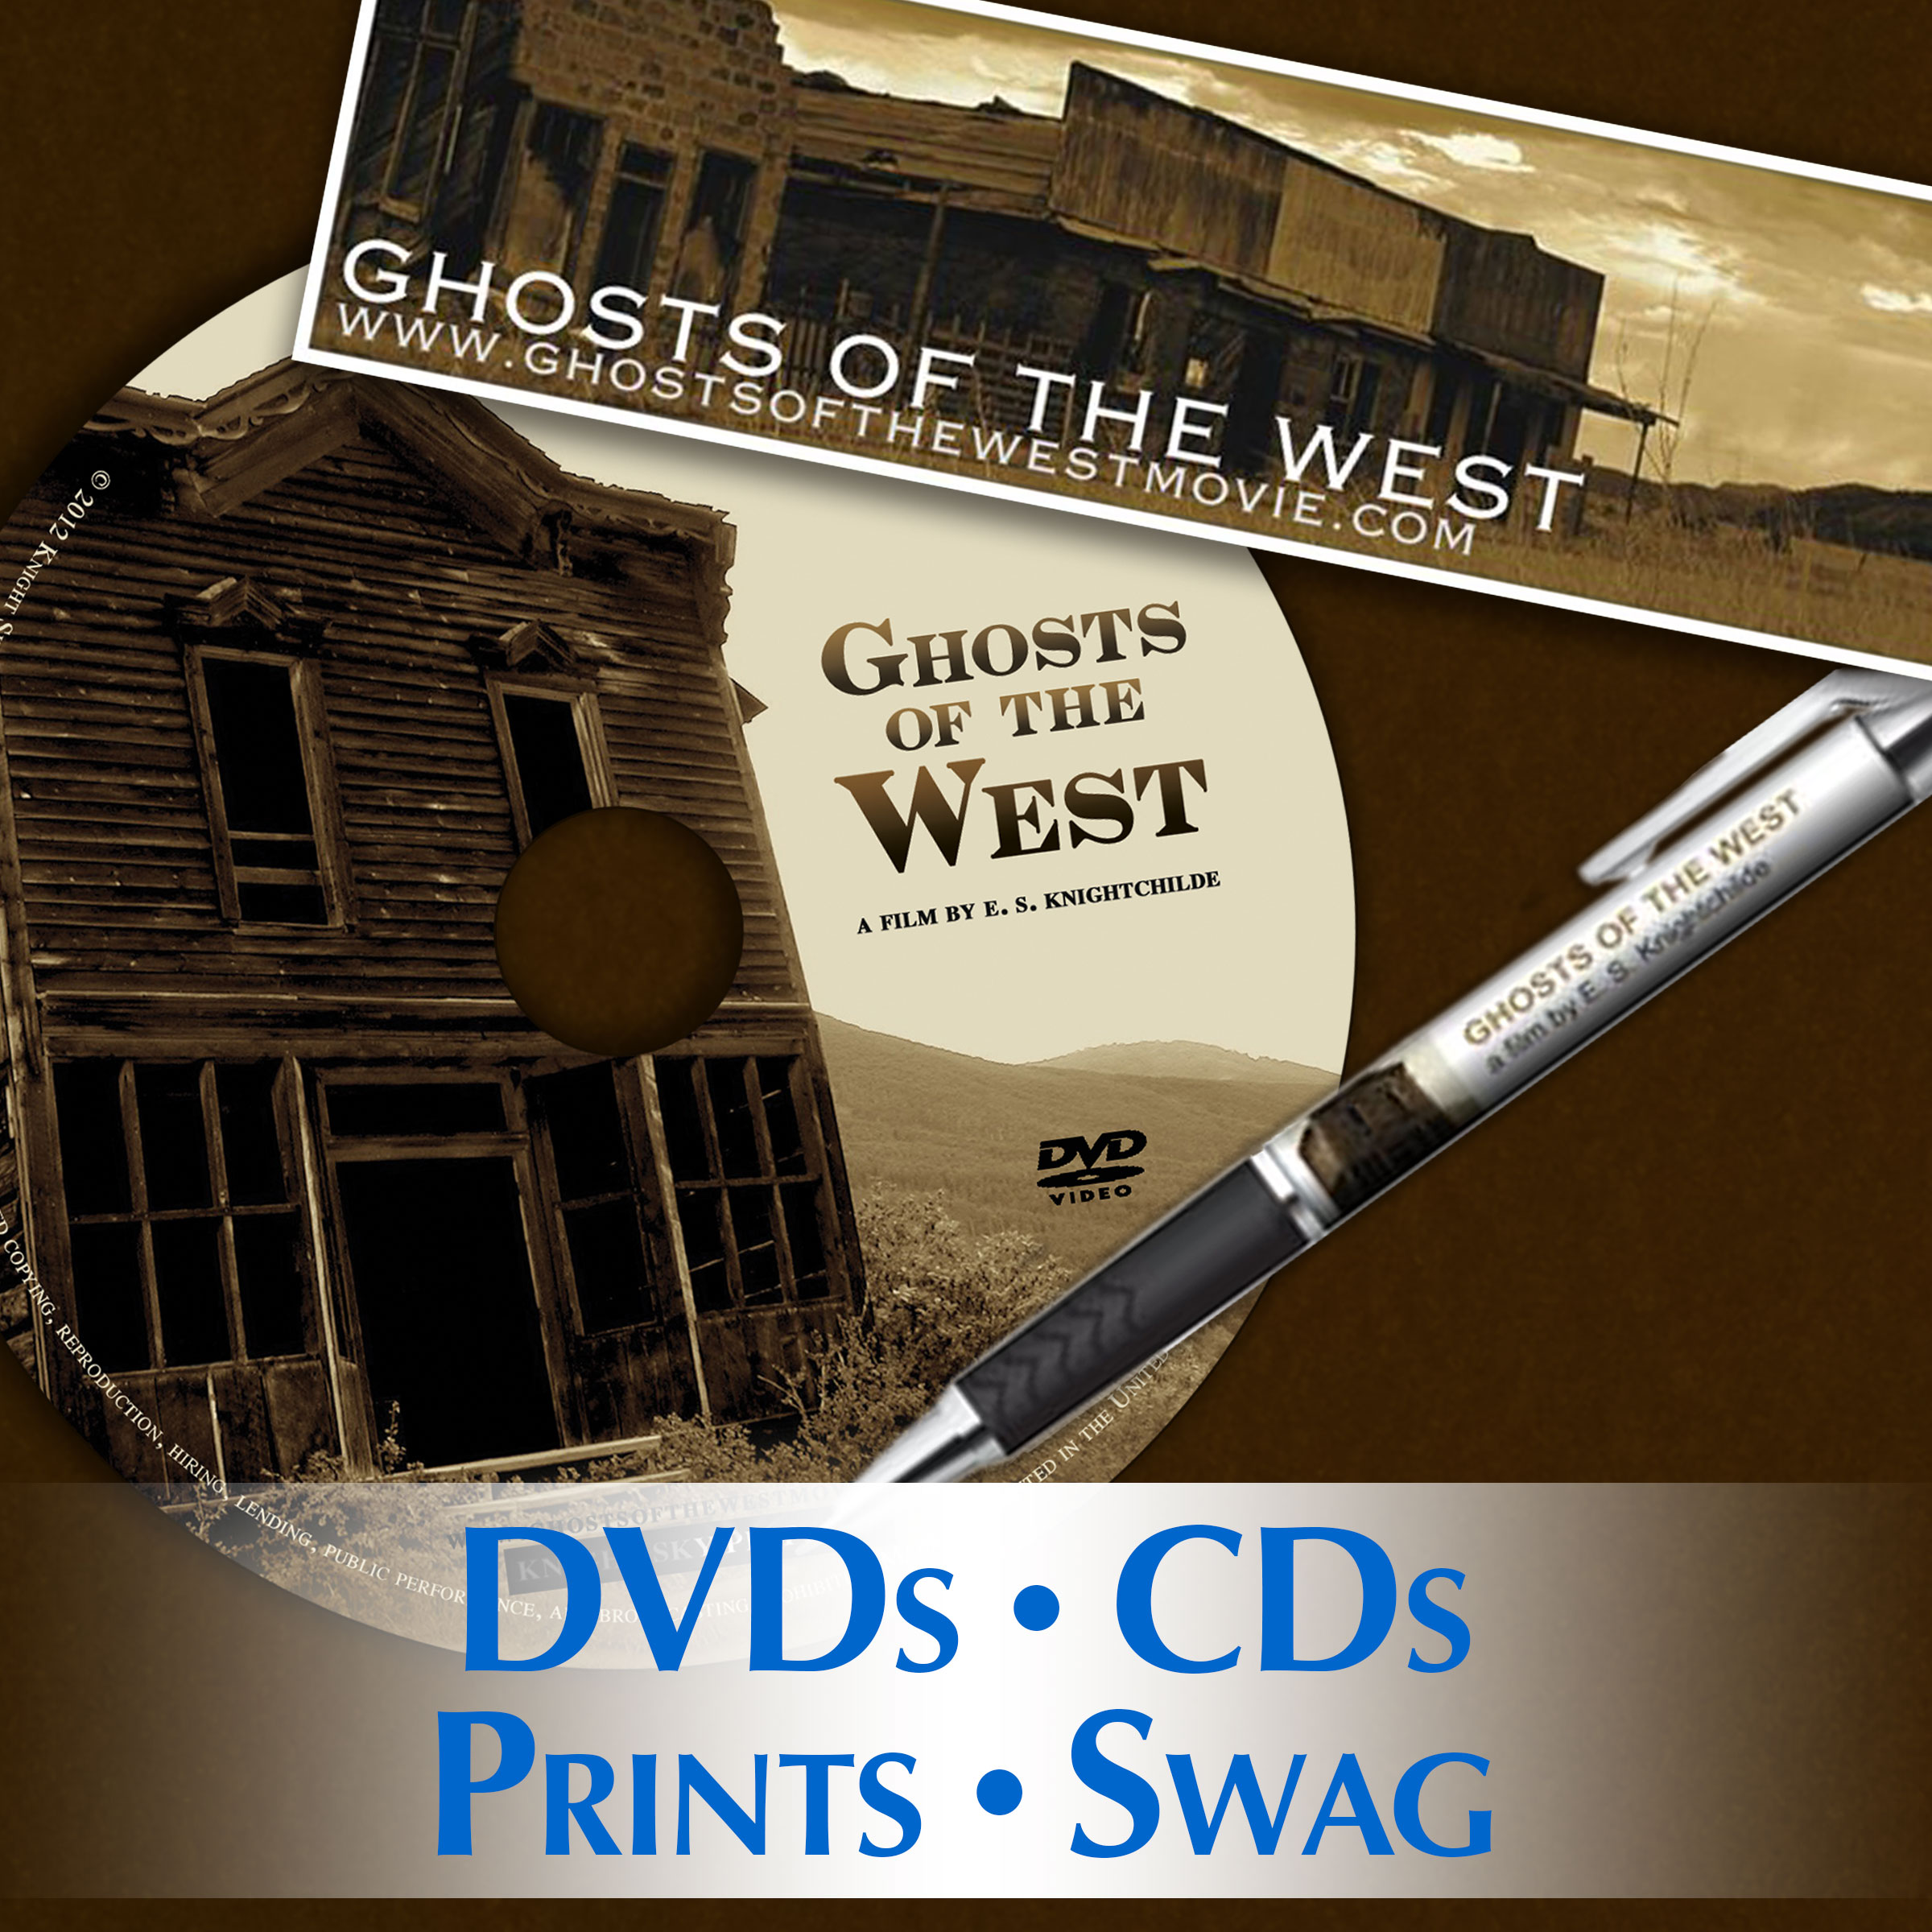 Ghosts of the West merchandise